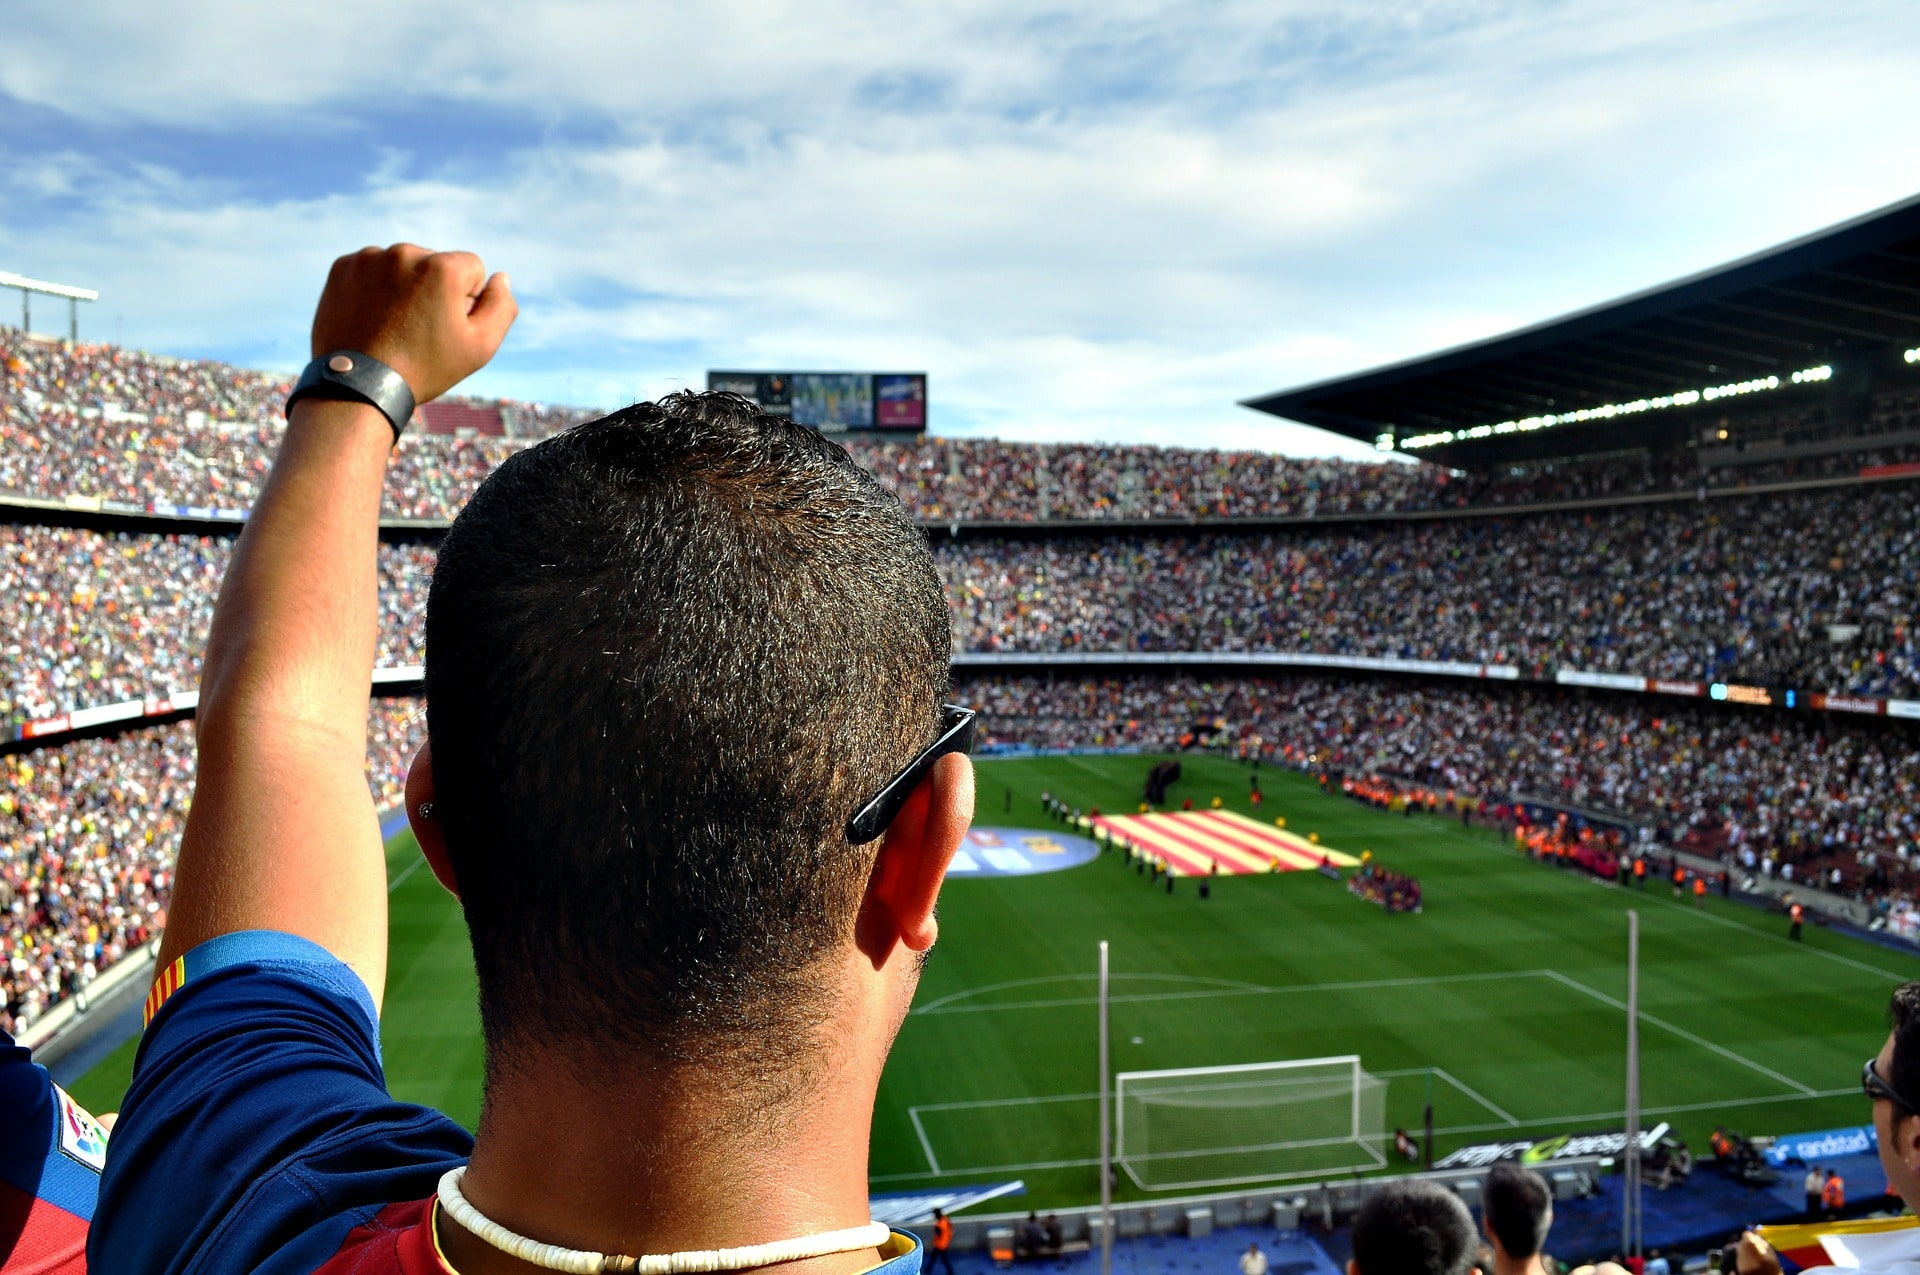 Have You Ever Faked Your Love of Sports to Impress Friends or Colleagues?